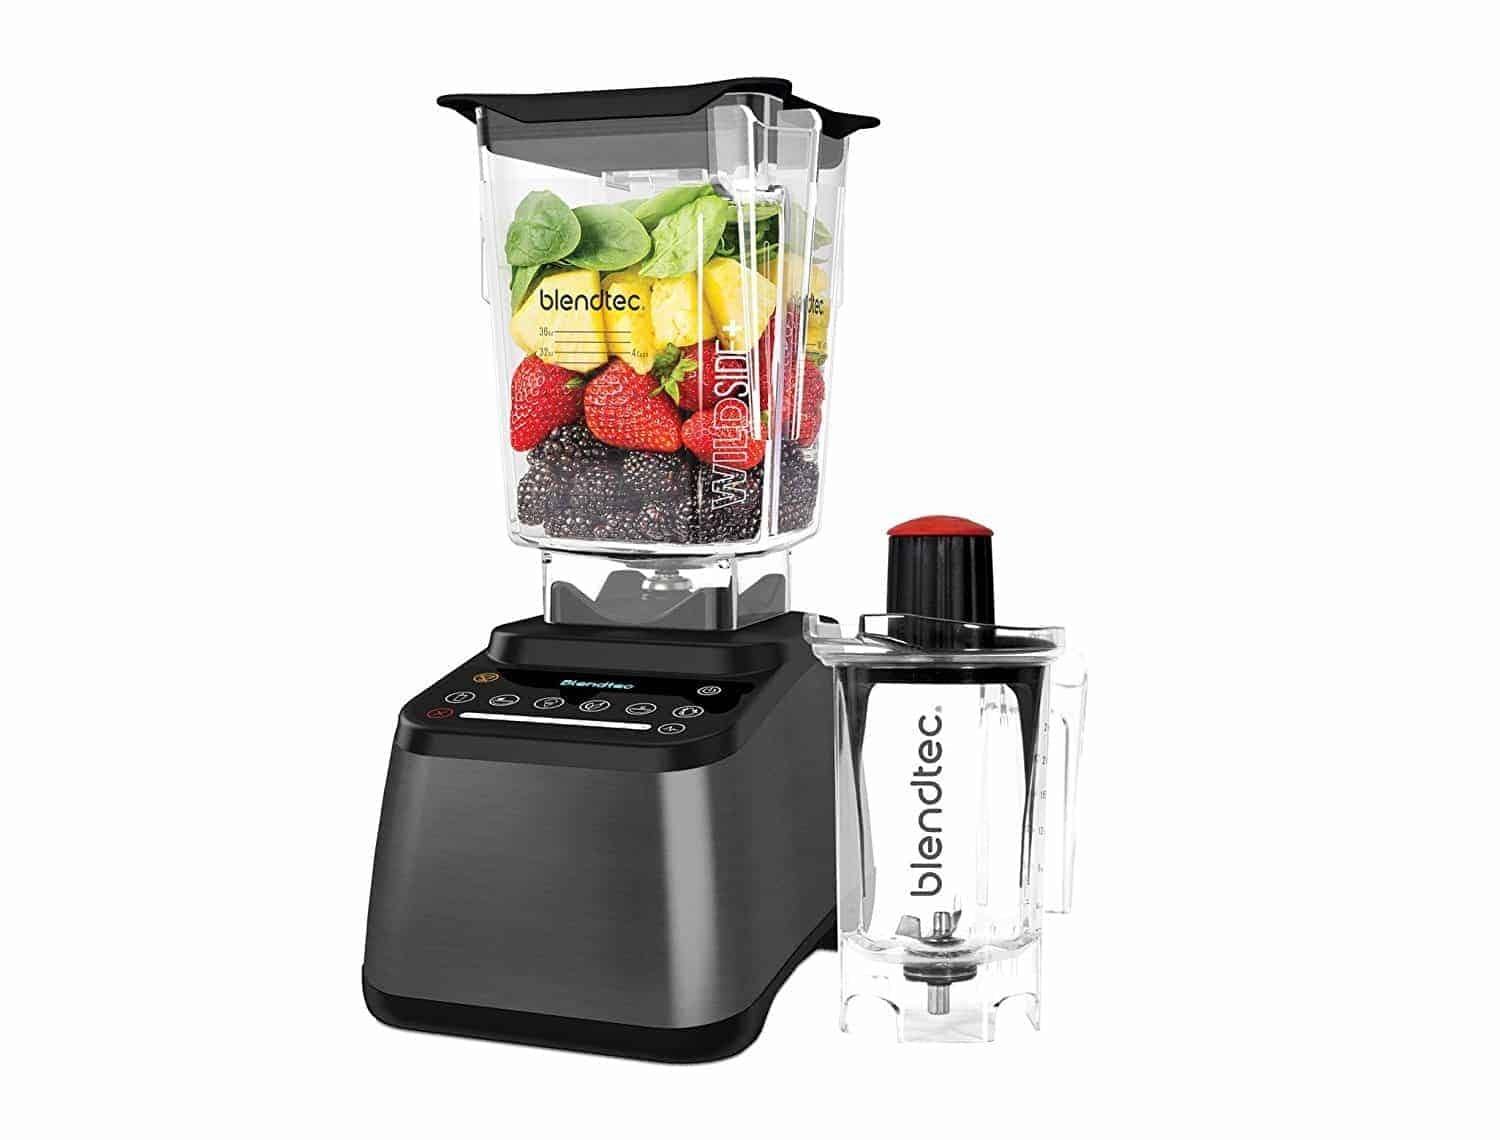 A grey blender on a white background.